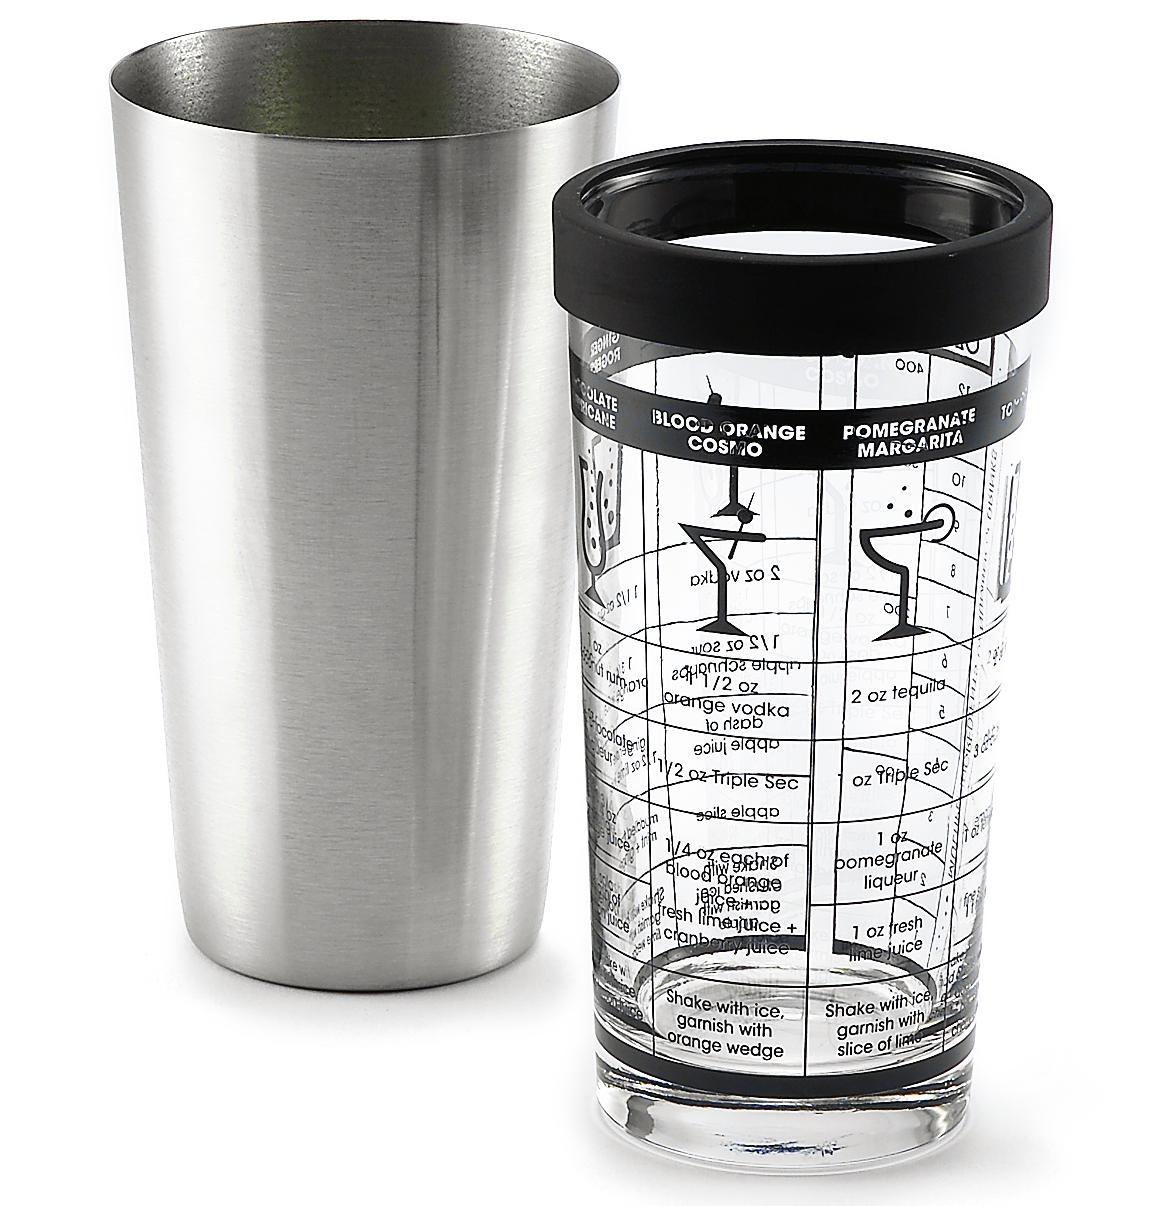 Outset Glass and Stainless Steel Boston Cocktail Shaker